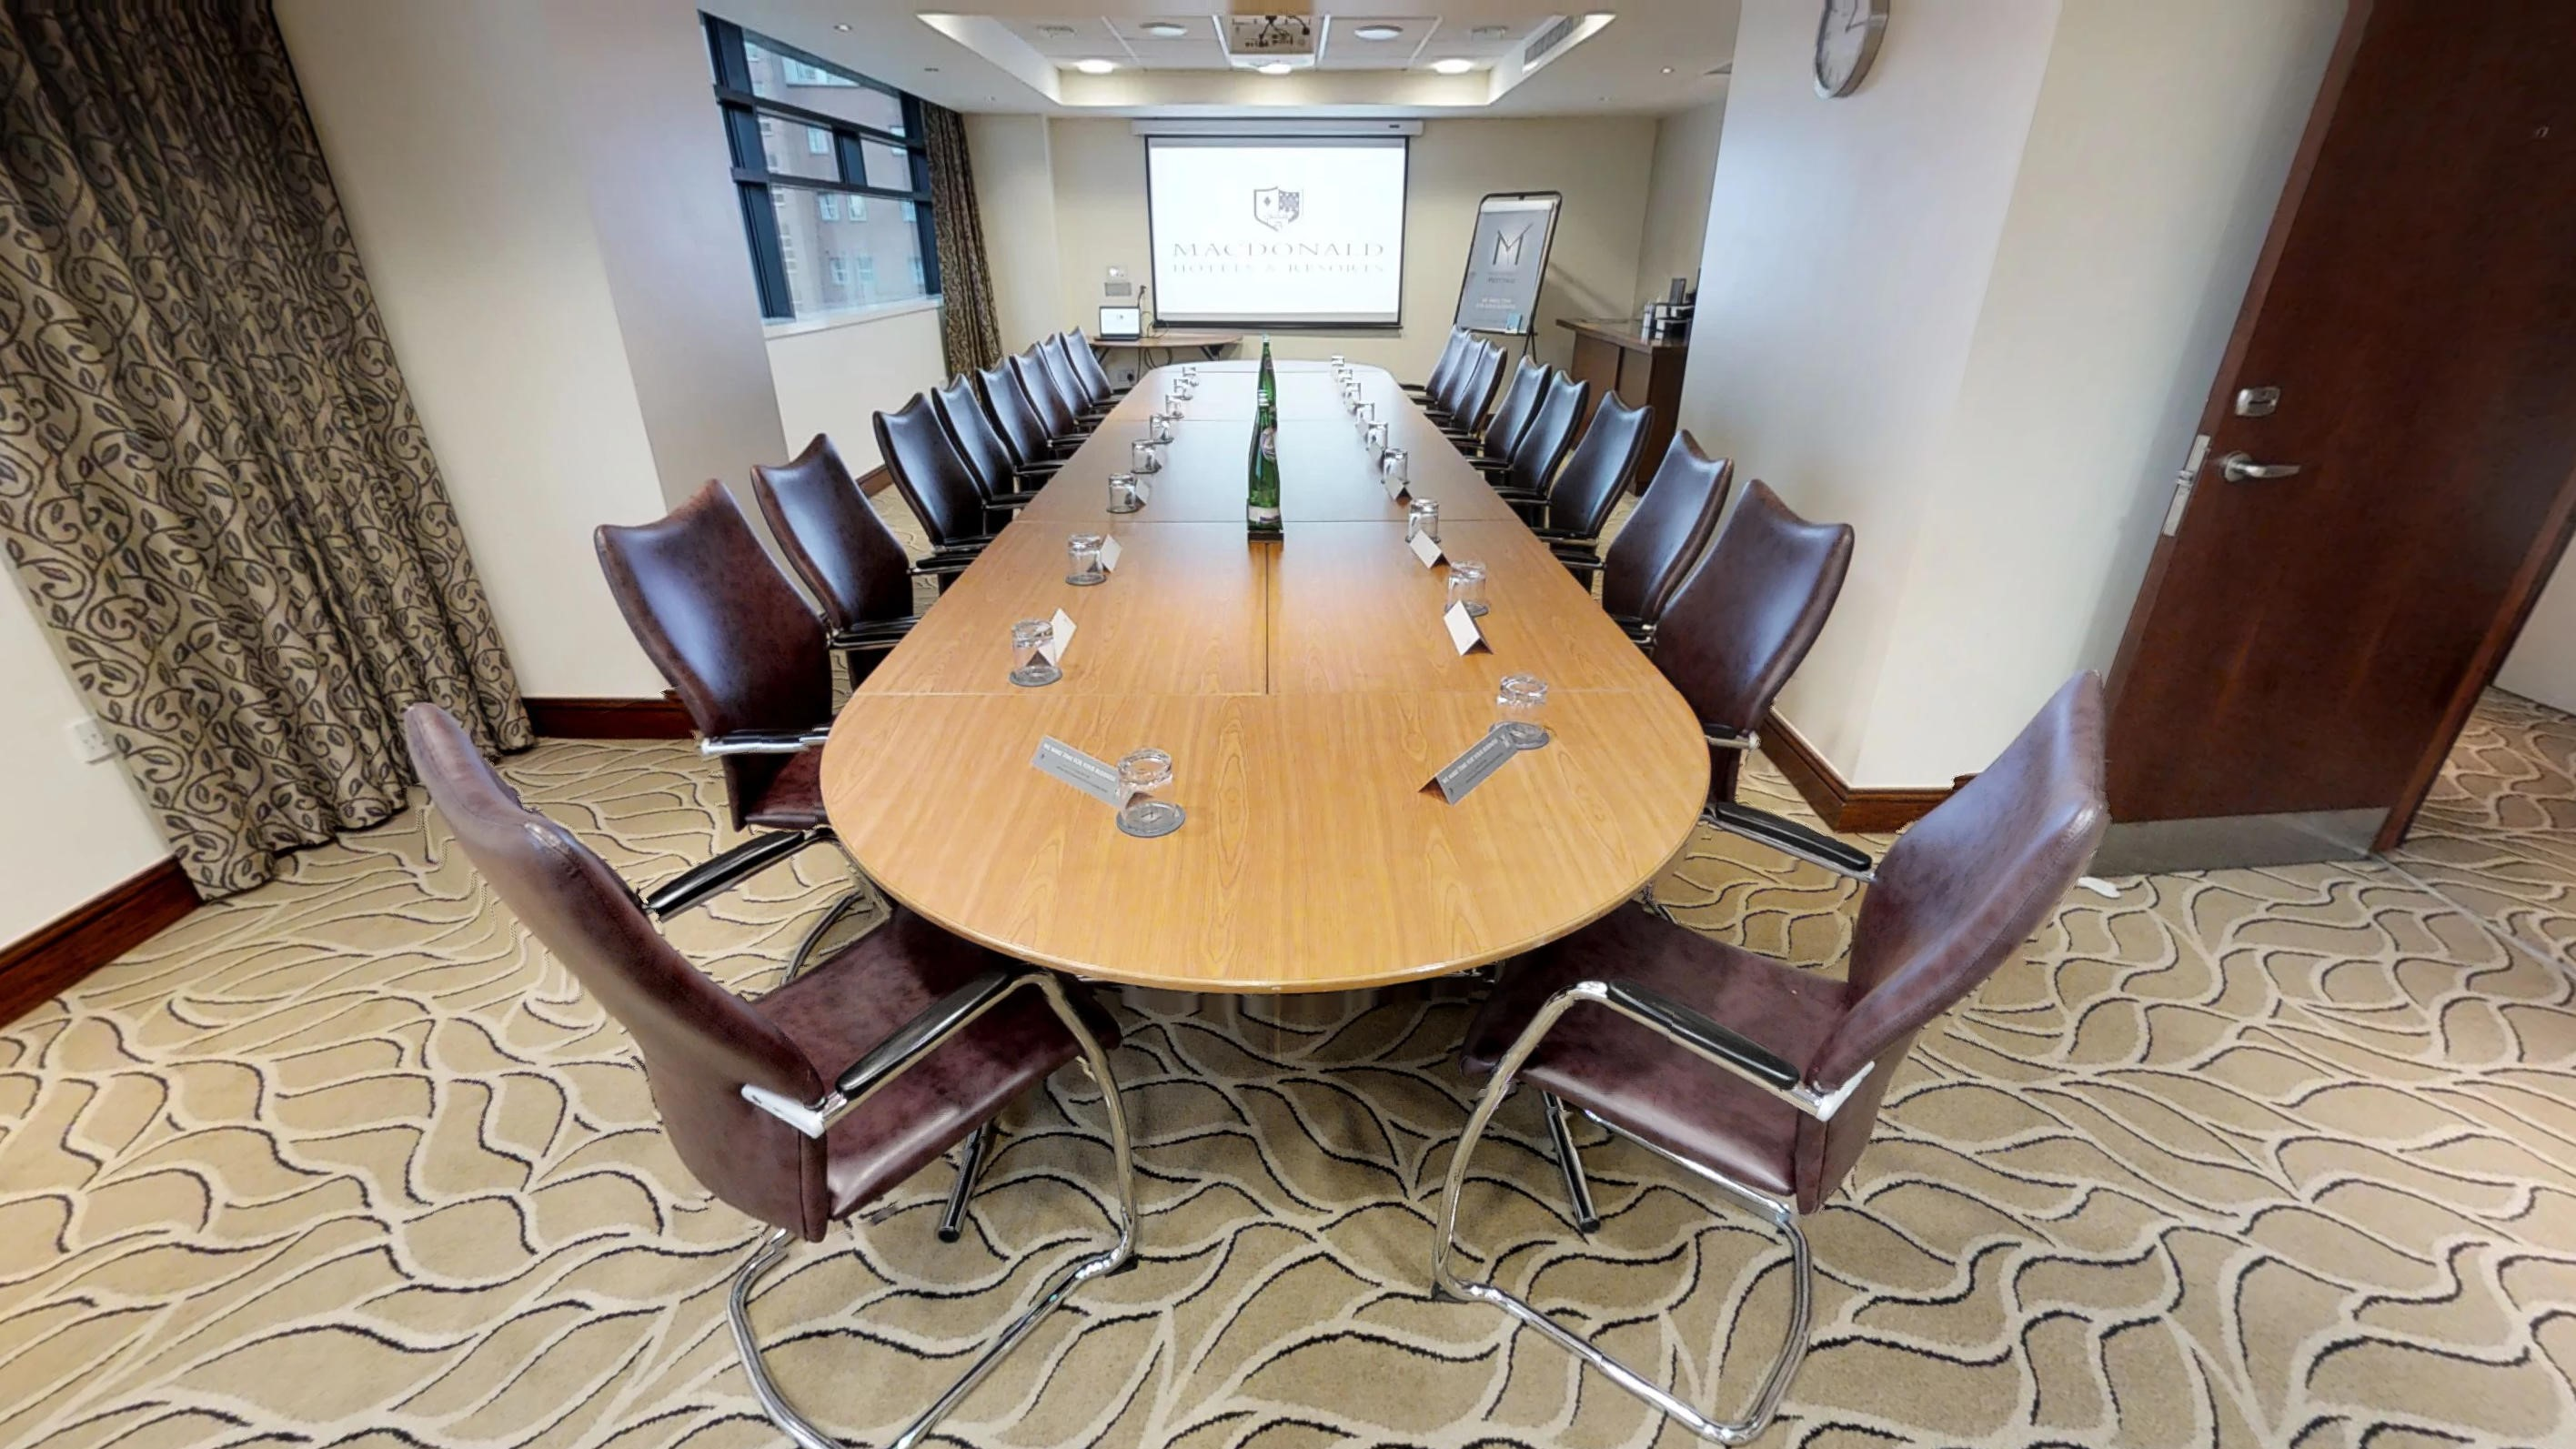 Meeting Rooms 3, 4, 5 & 7 Configurations